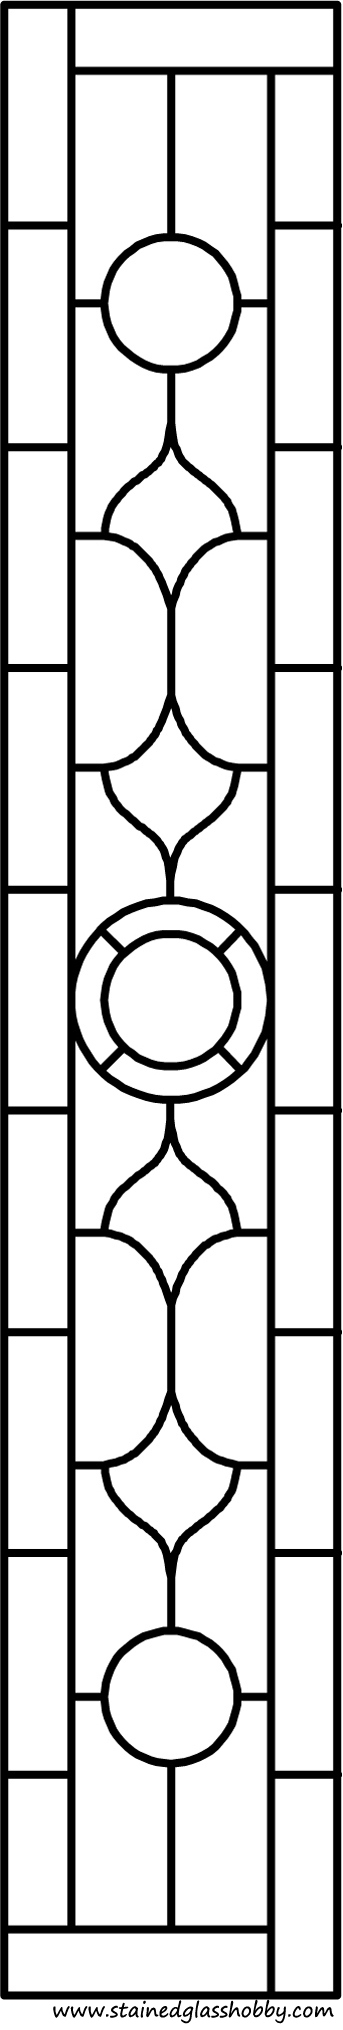 Rectangular panel for stained glass pattern 2